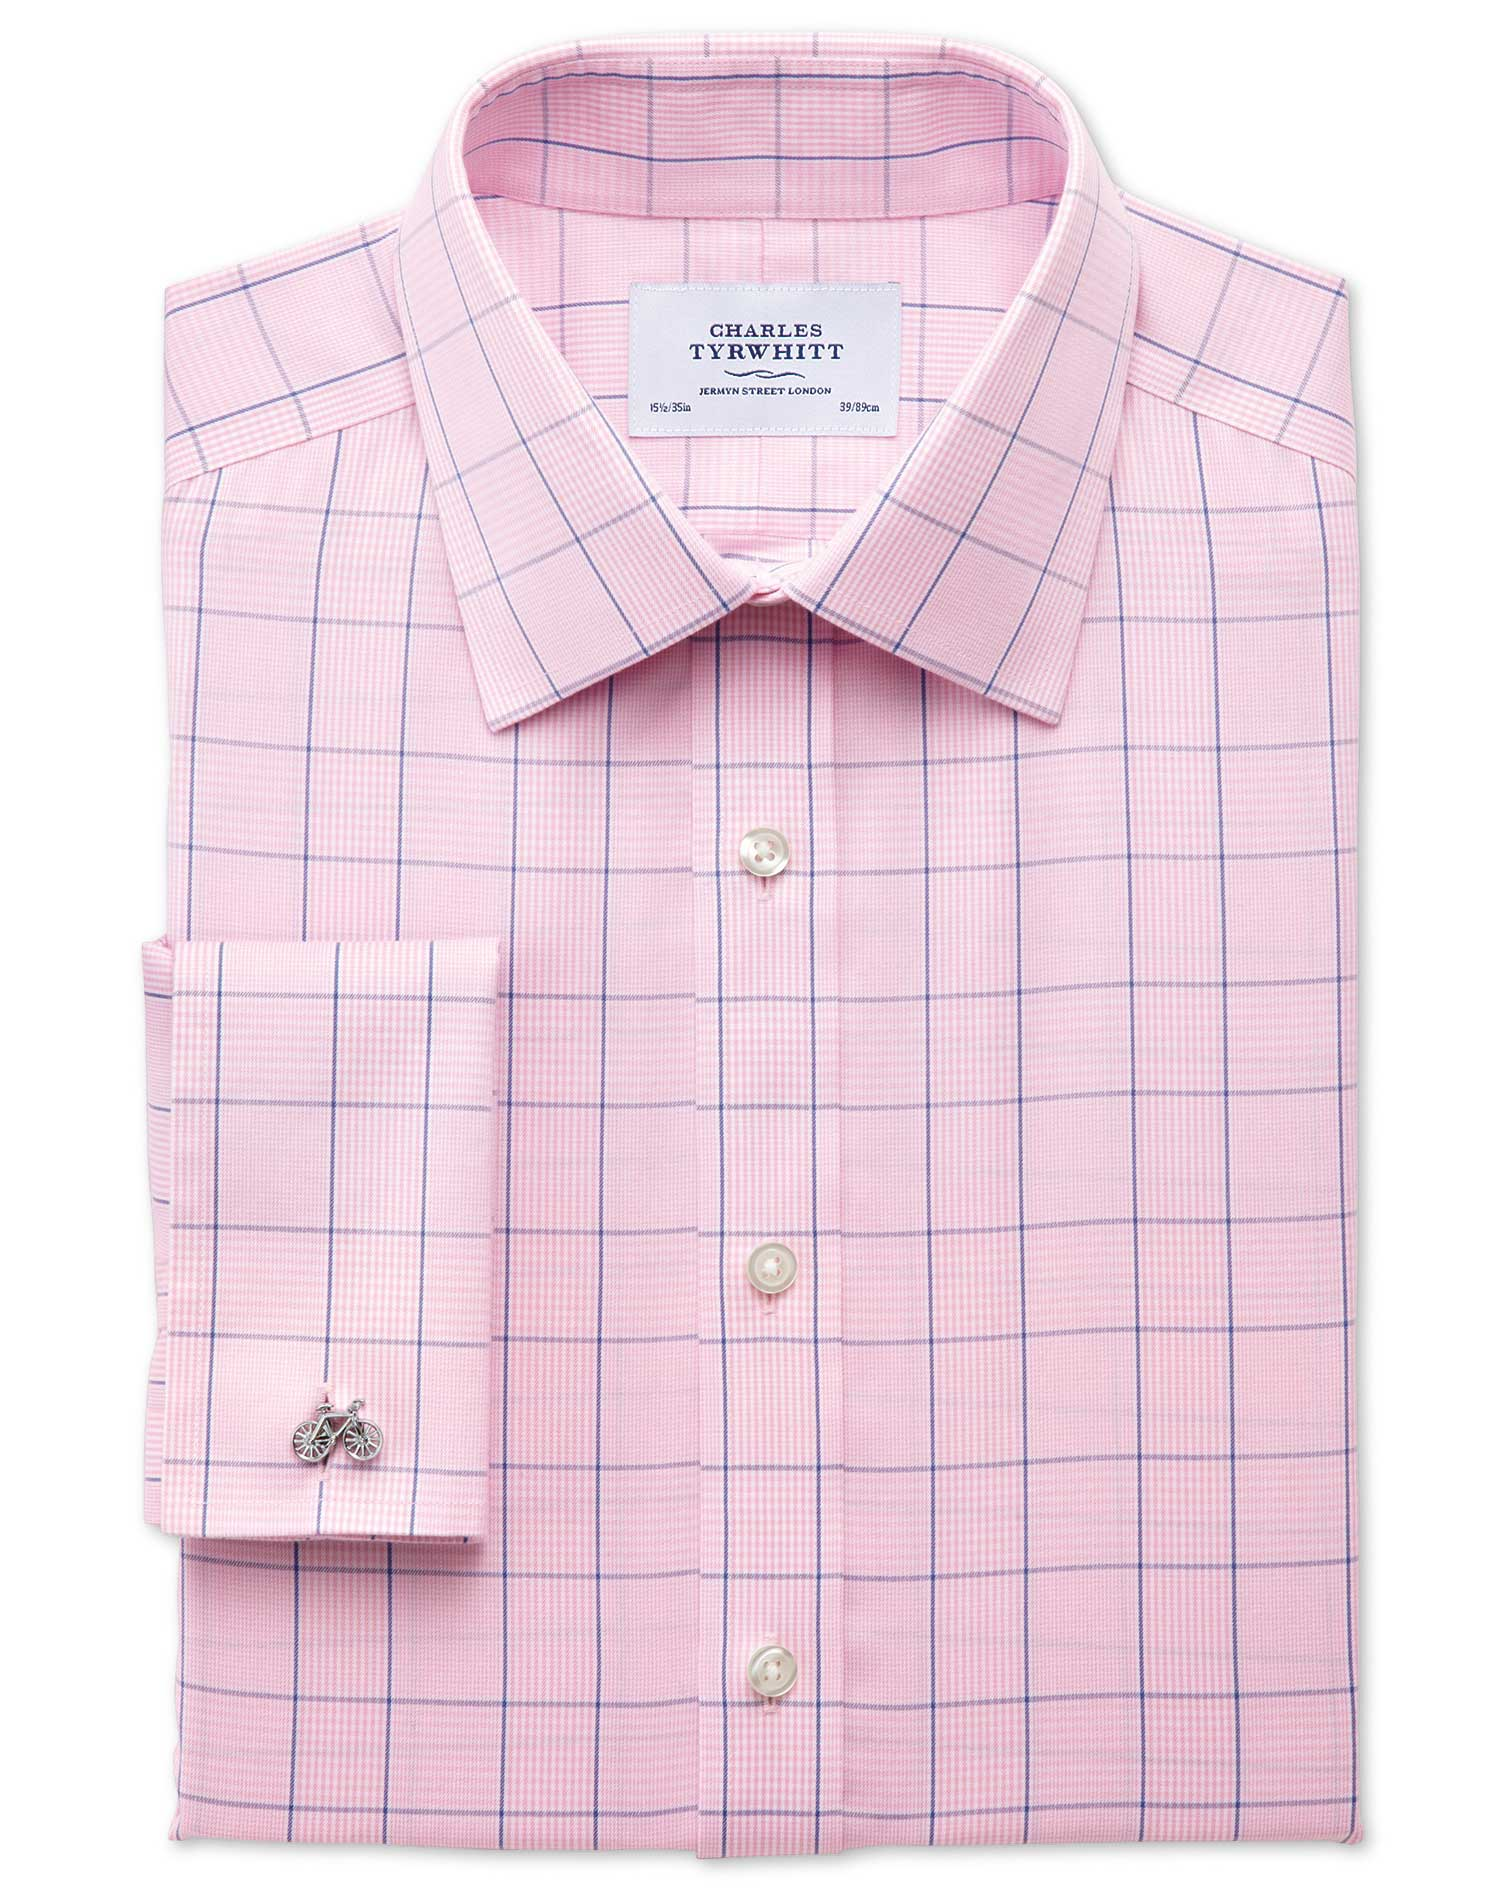 Classic Fit Non-Iron Prince Of Wales Check Pink and Blue Cotton Formal Shirt Single Cuff Size 17/34